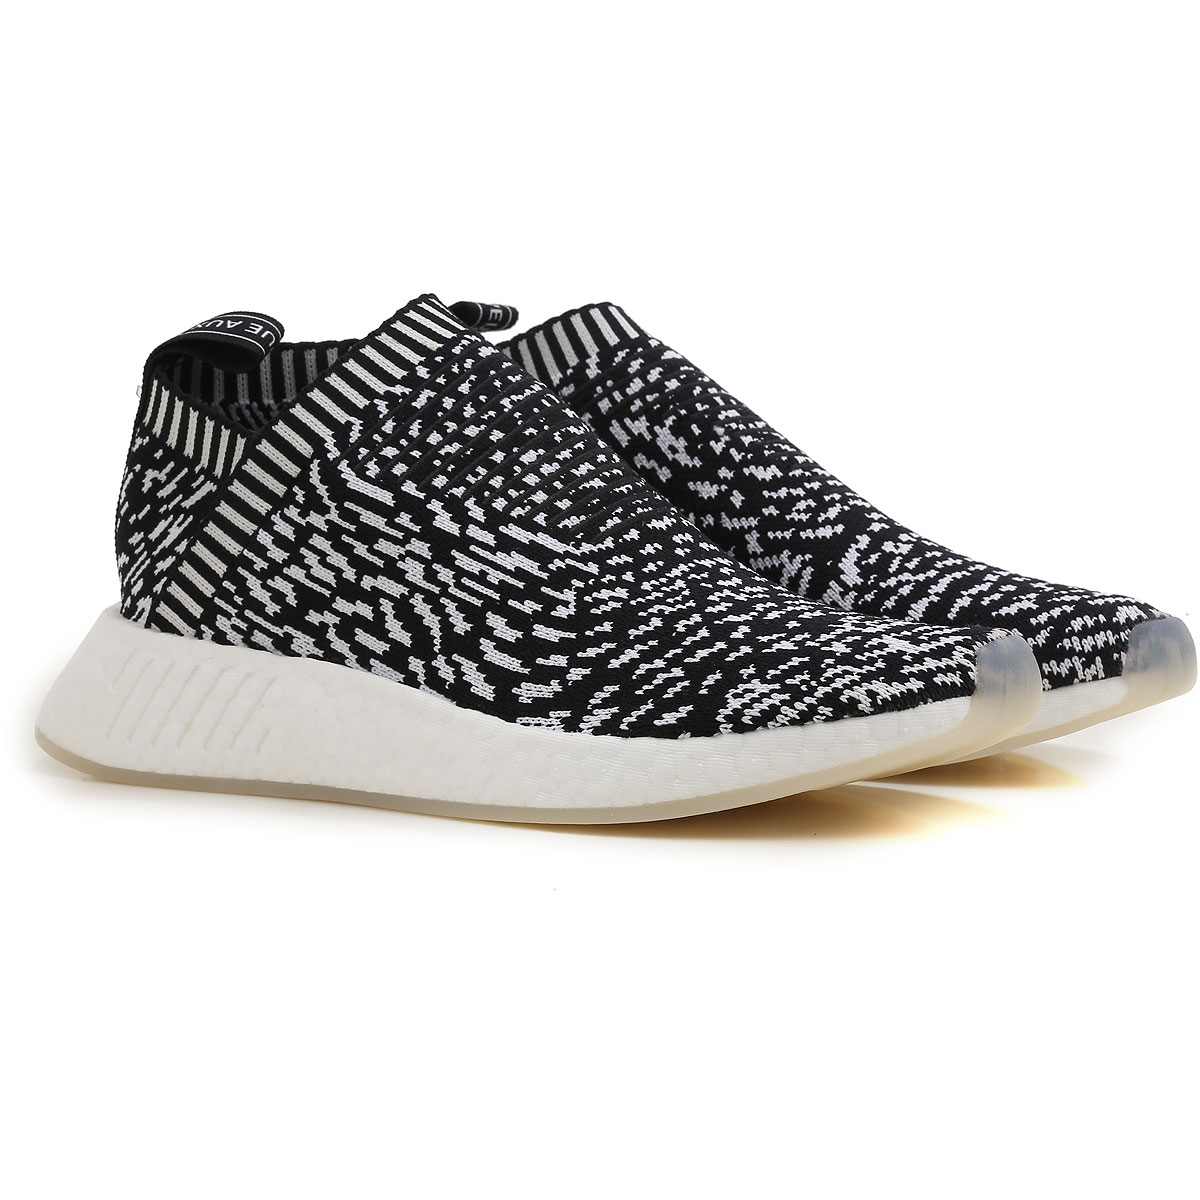 Mens Shoes Adidas, Style code: by3012 nmd cs2